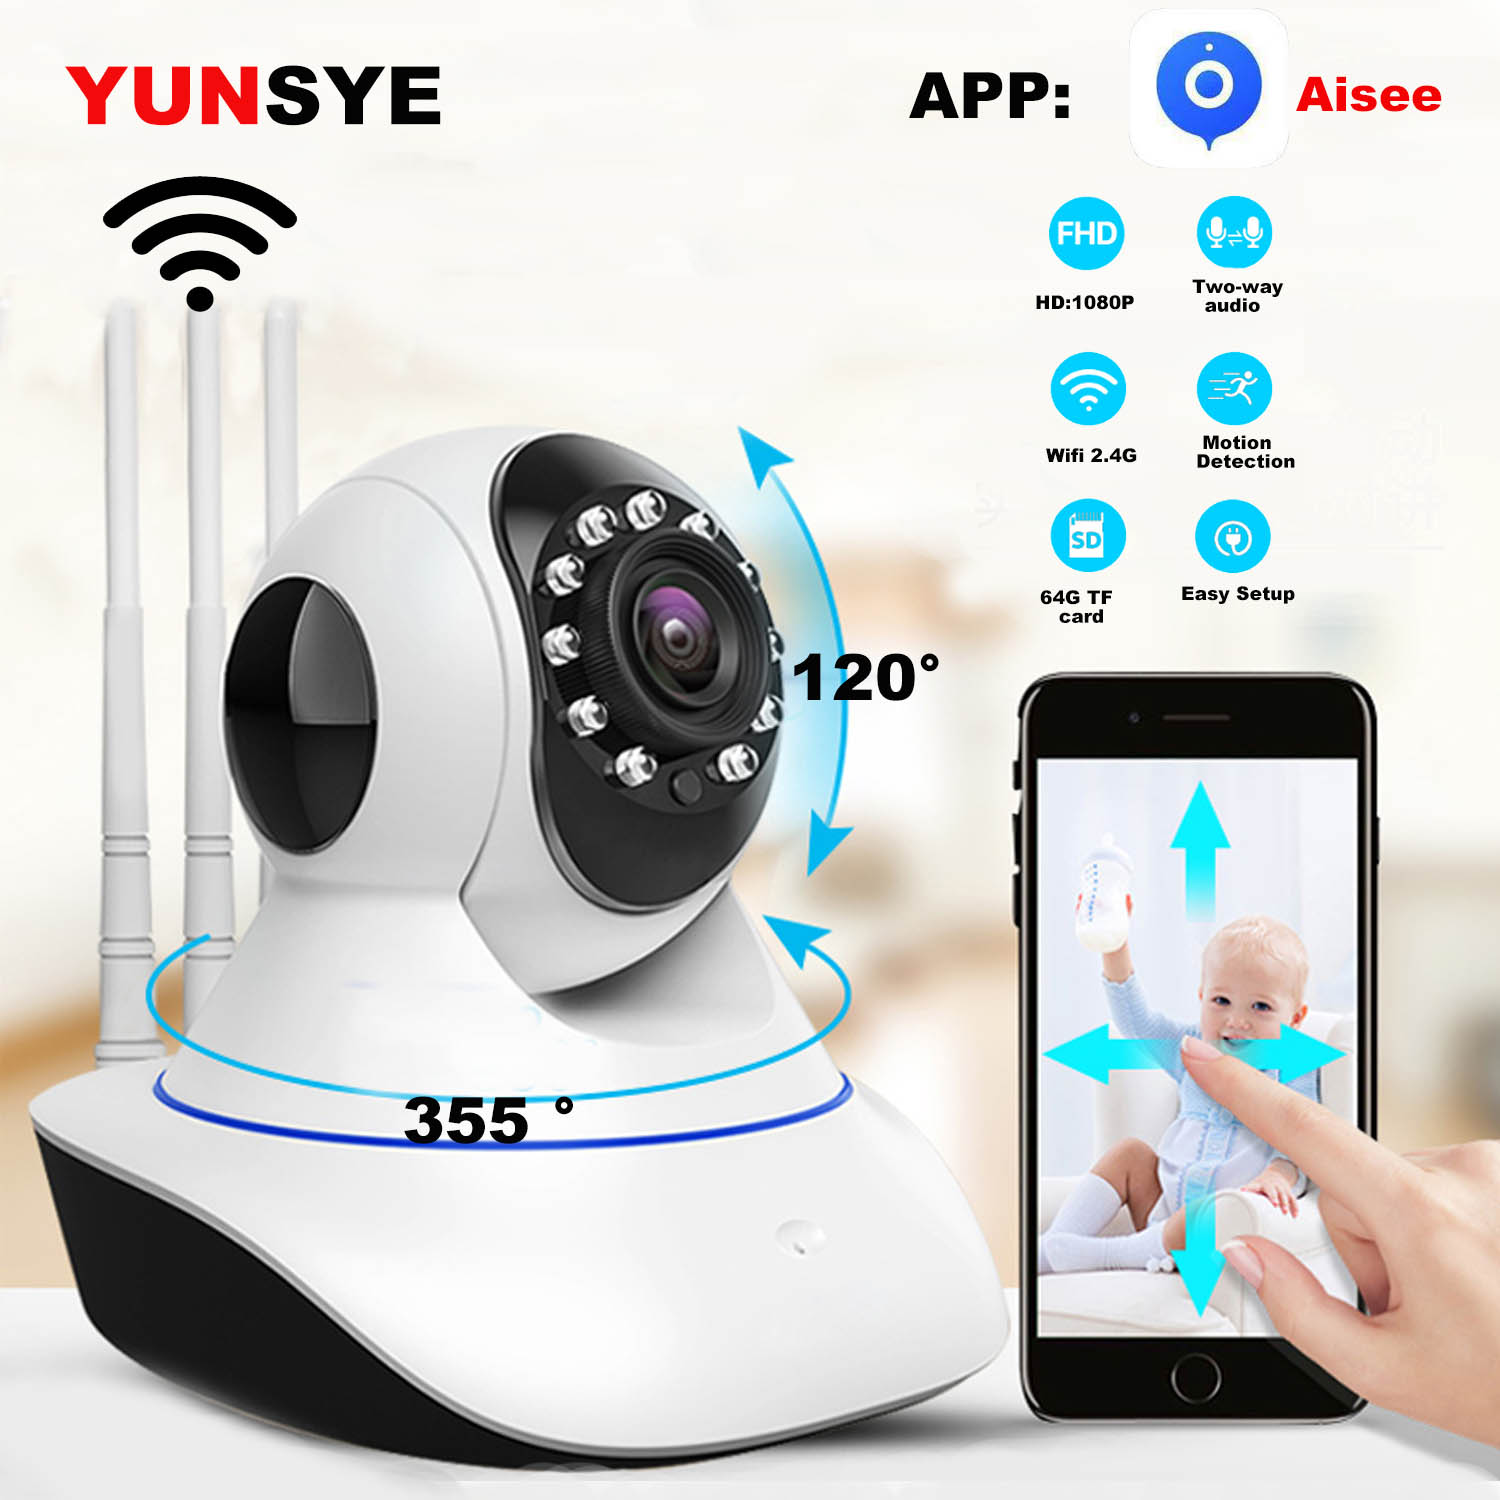 YUNSYE HD 1080P Wireless WIFI IP Camera Home Security Monitor Intelligent Network Video System Two Audio Night Vision APP:AISEE